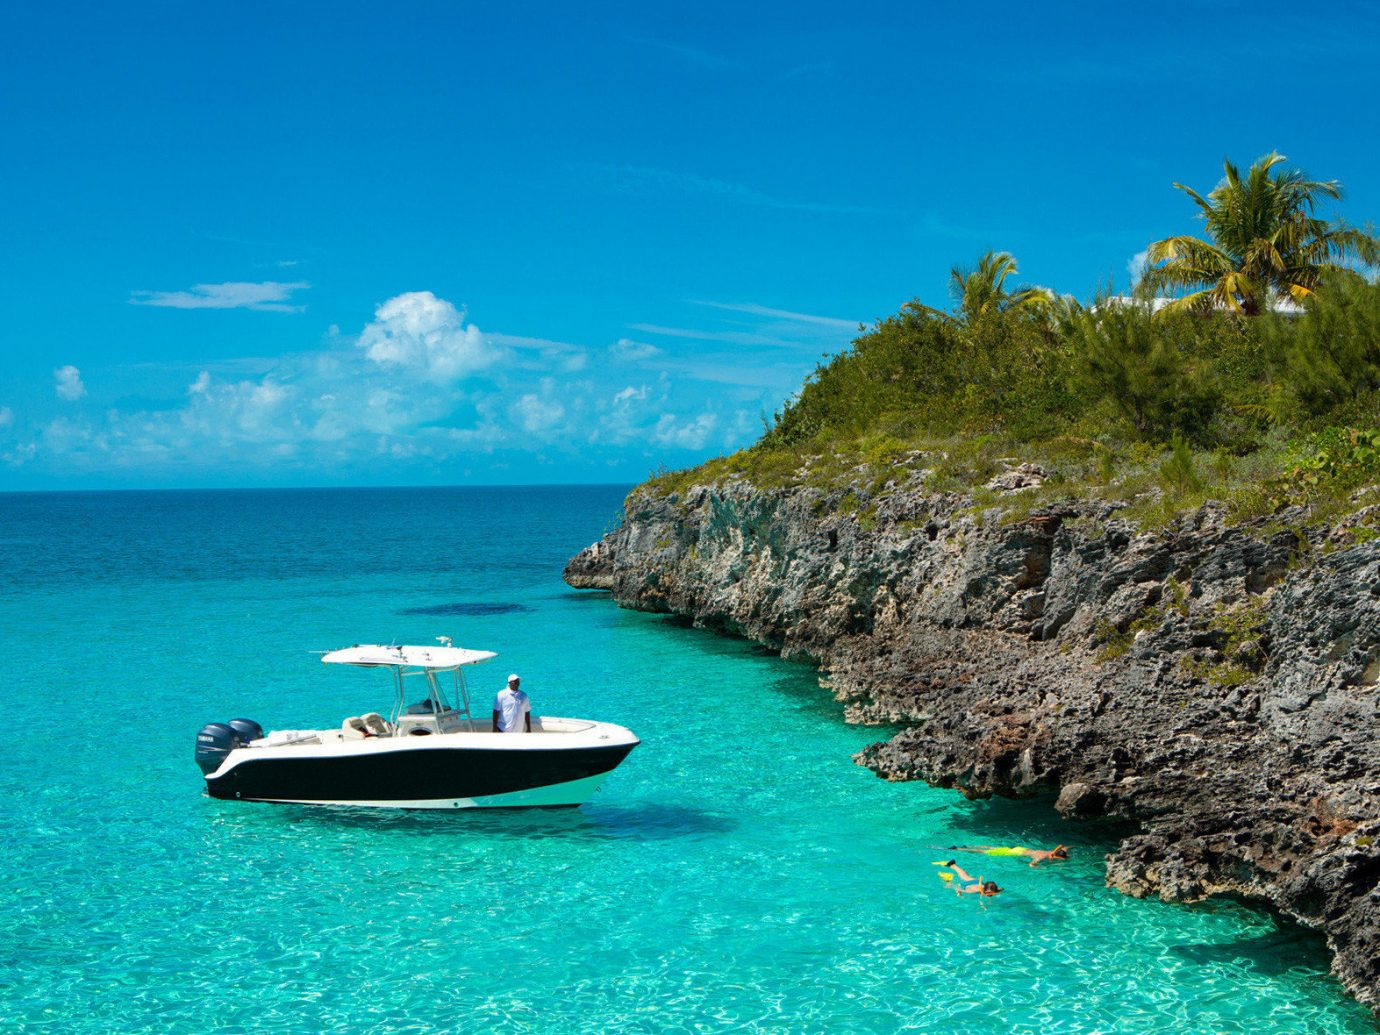 ocean view of The Cove Eleuthera